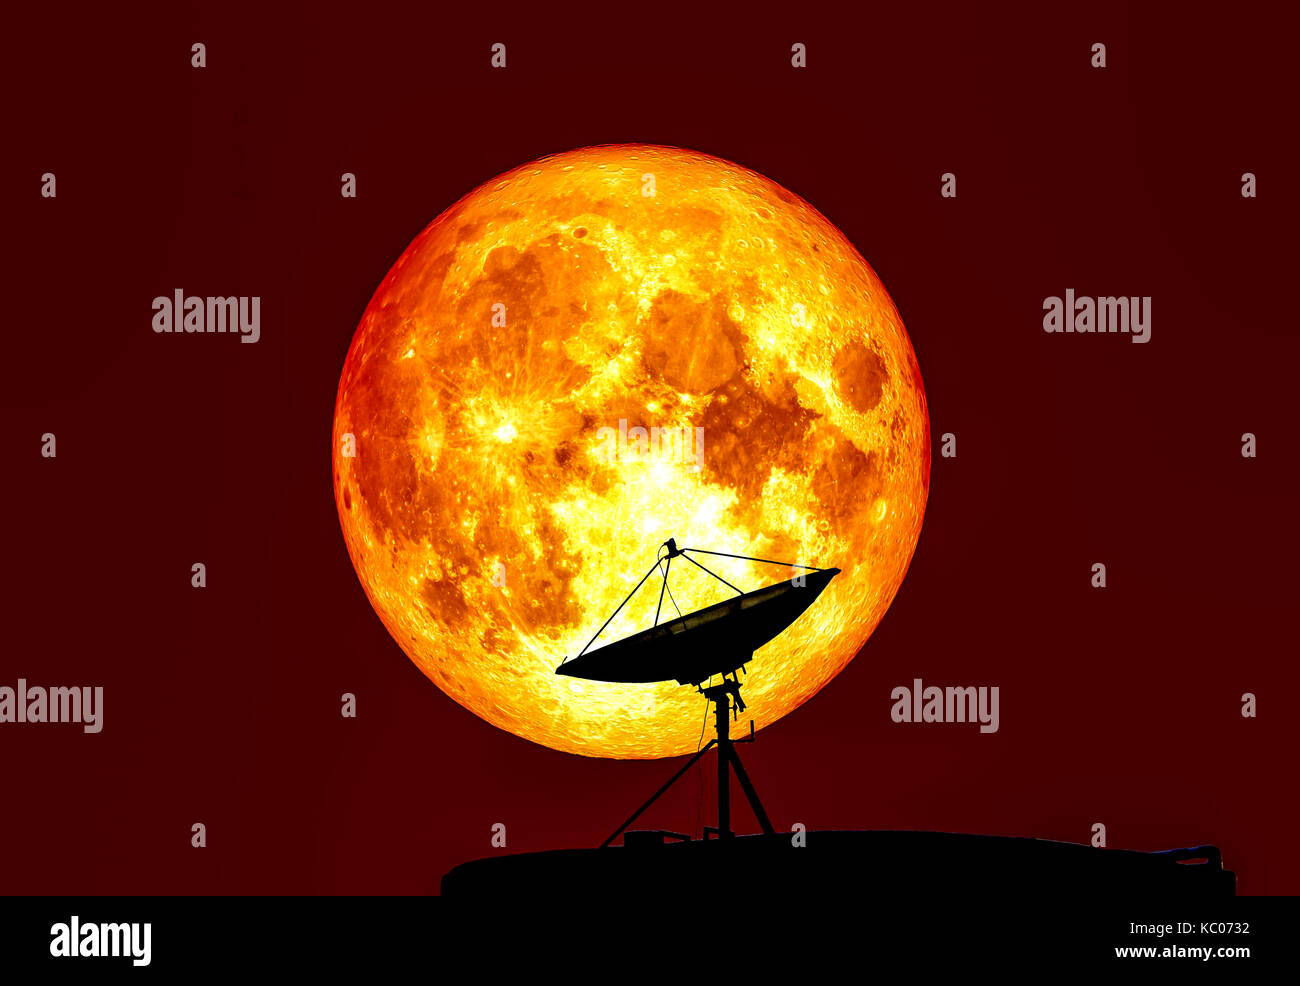 Blood moon full moon and satellite, Elements of this image furnished by NASA - Stock Image